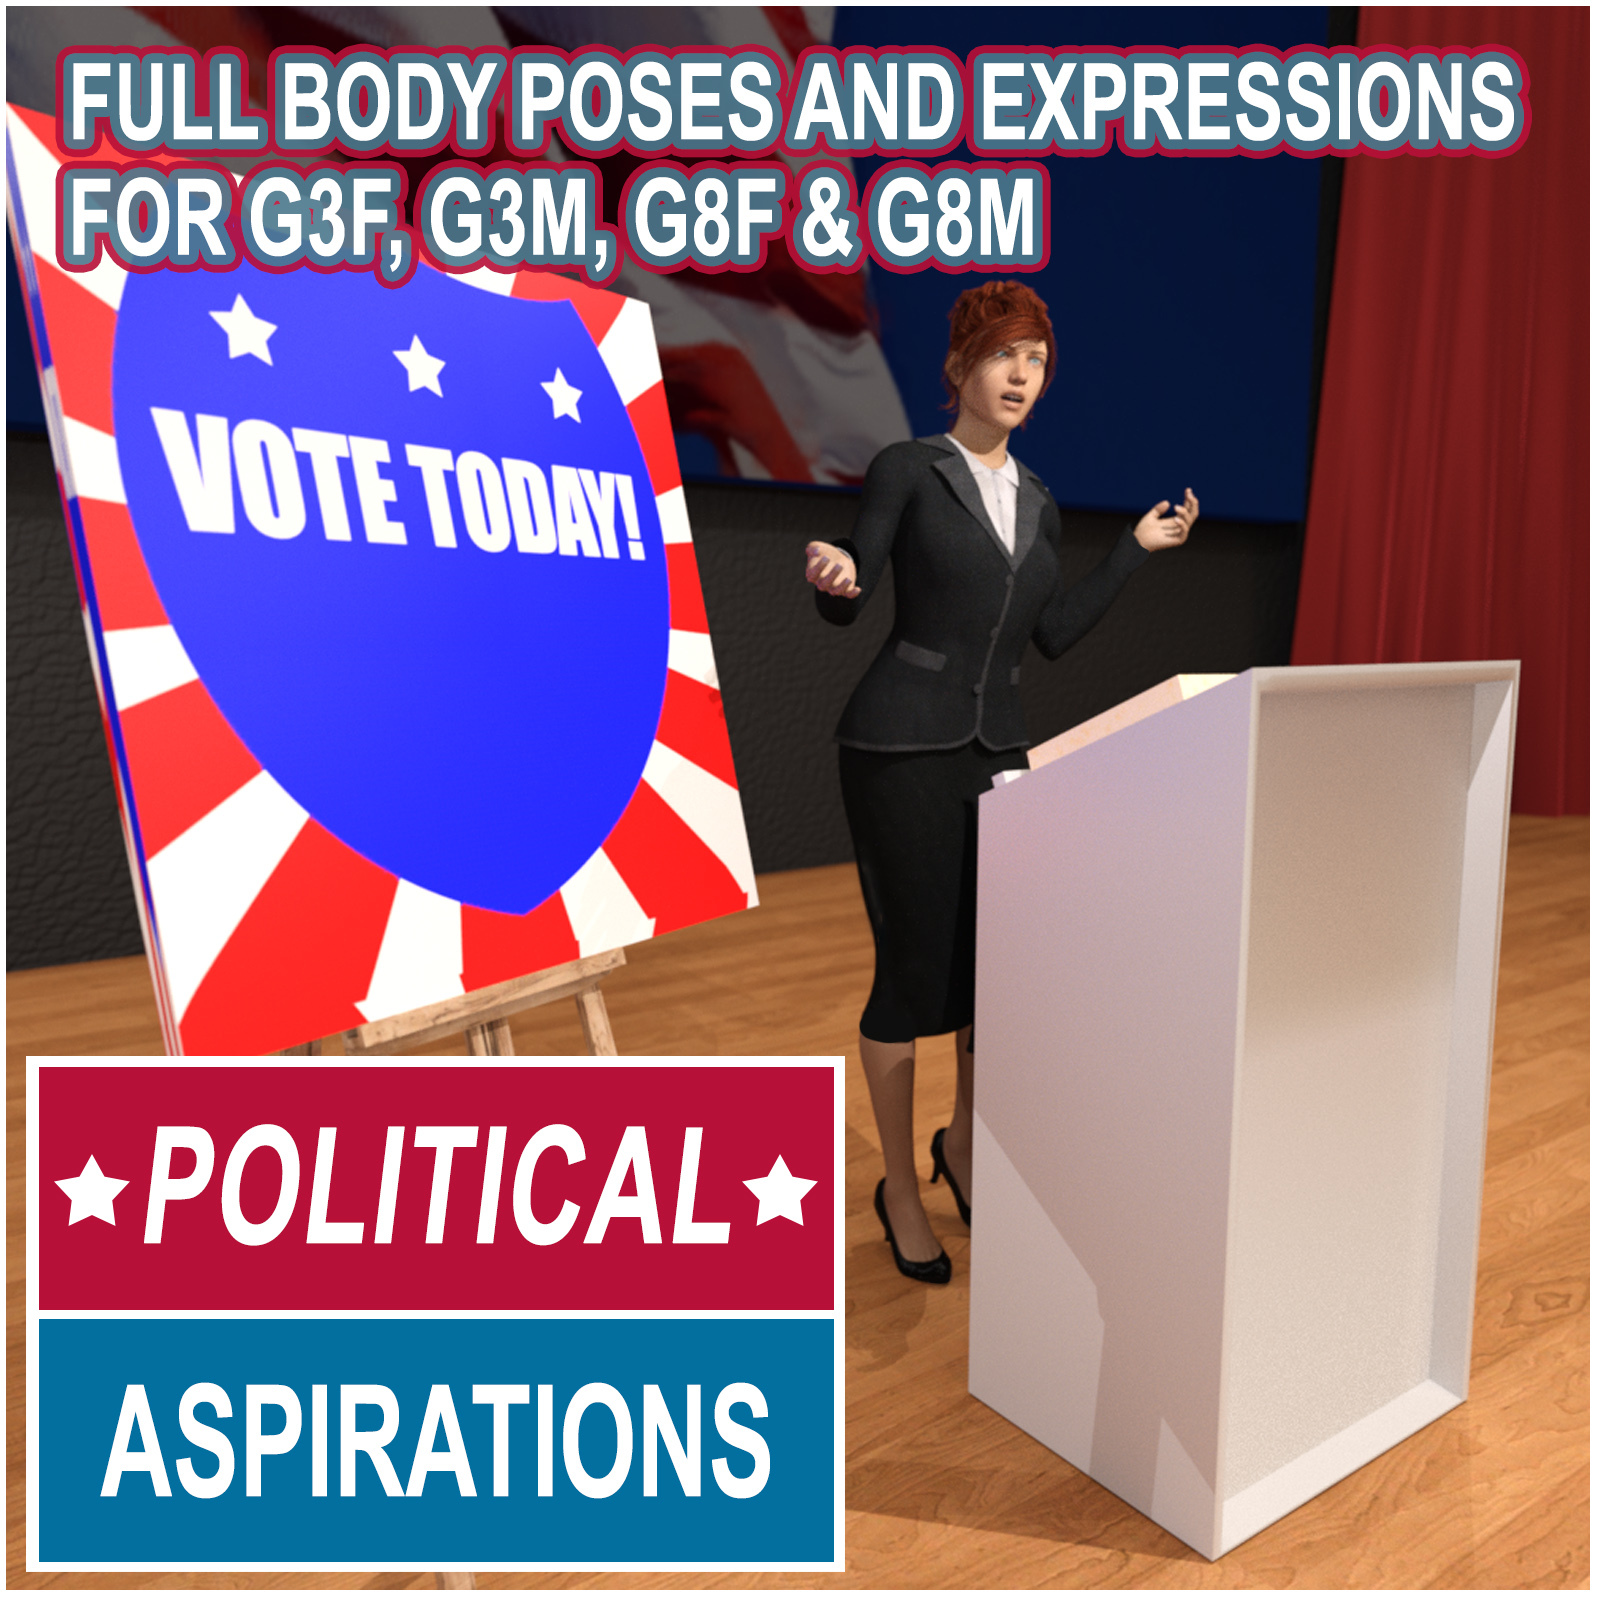 Political Aspirations for G3 & G8